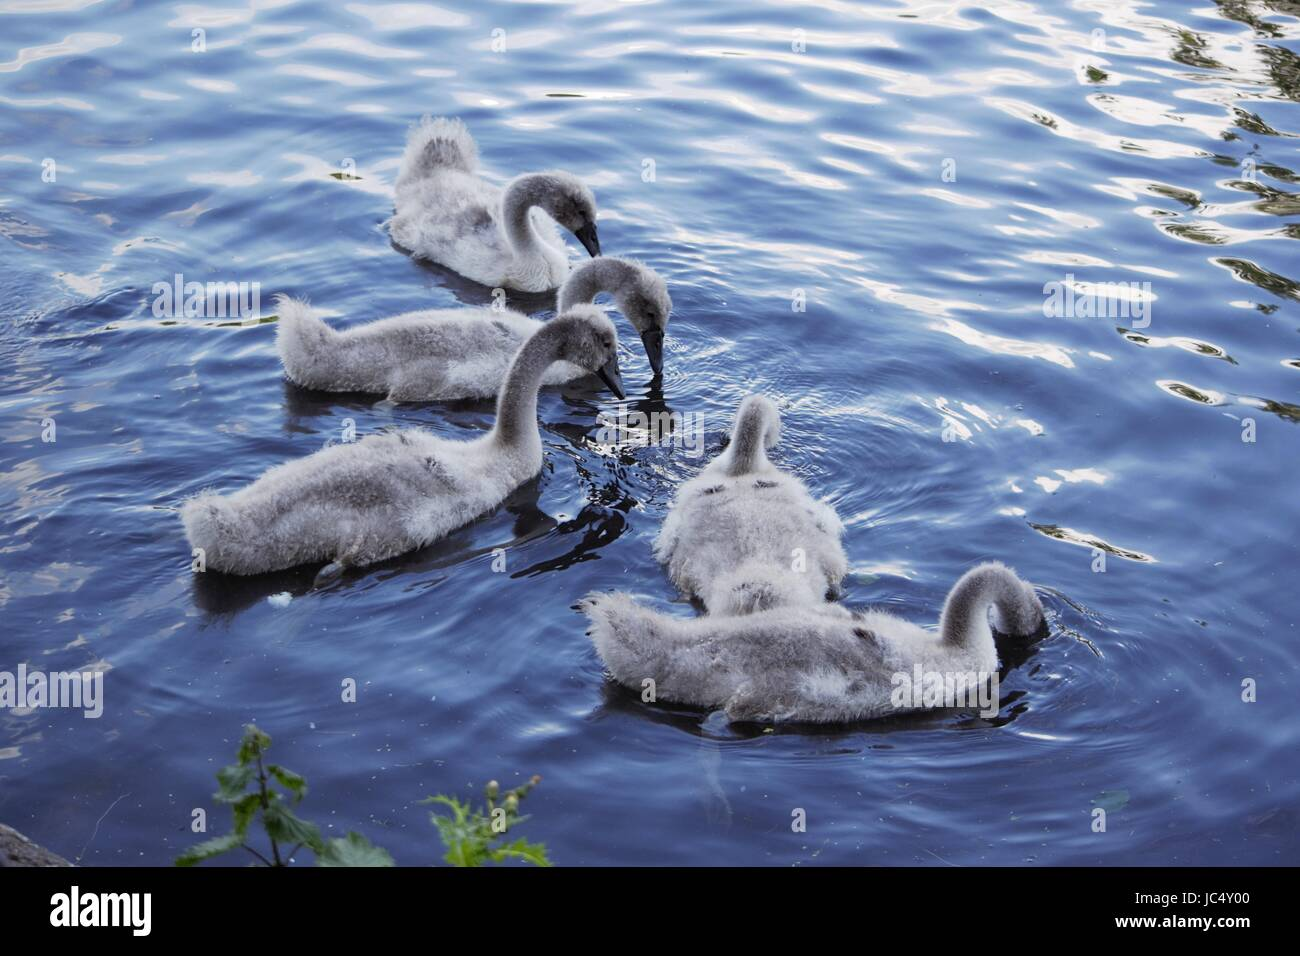 Baby Swans in Queens park lake - Heywood - Manchester Stock Photo